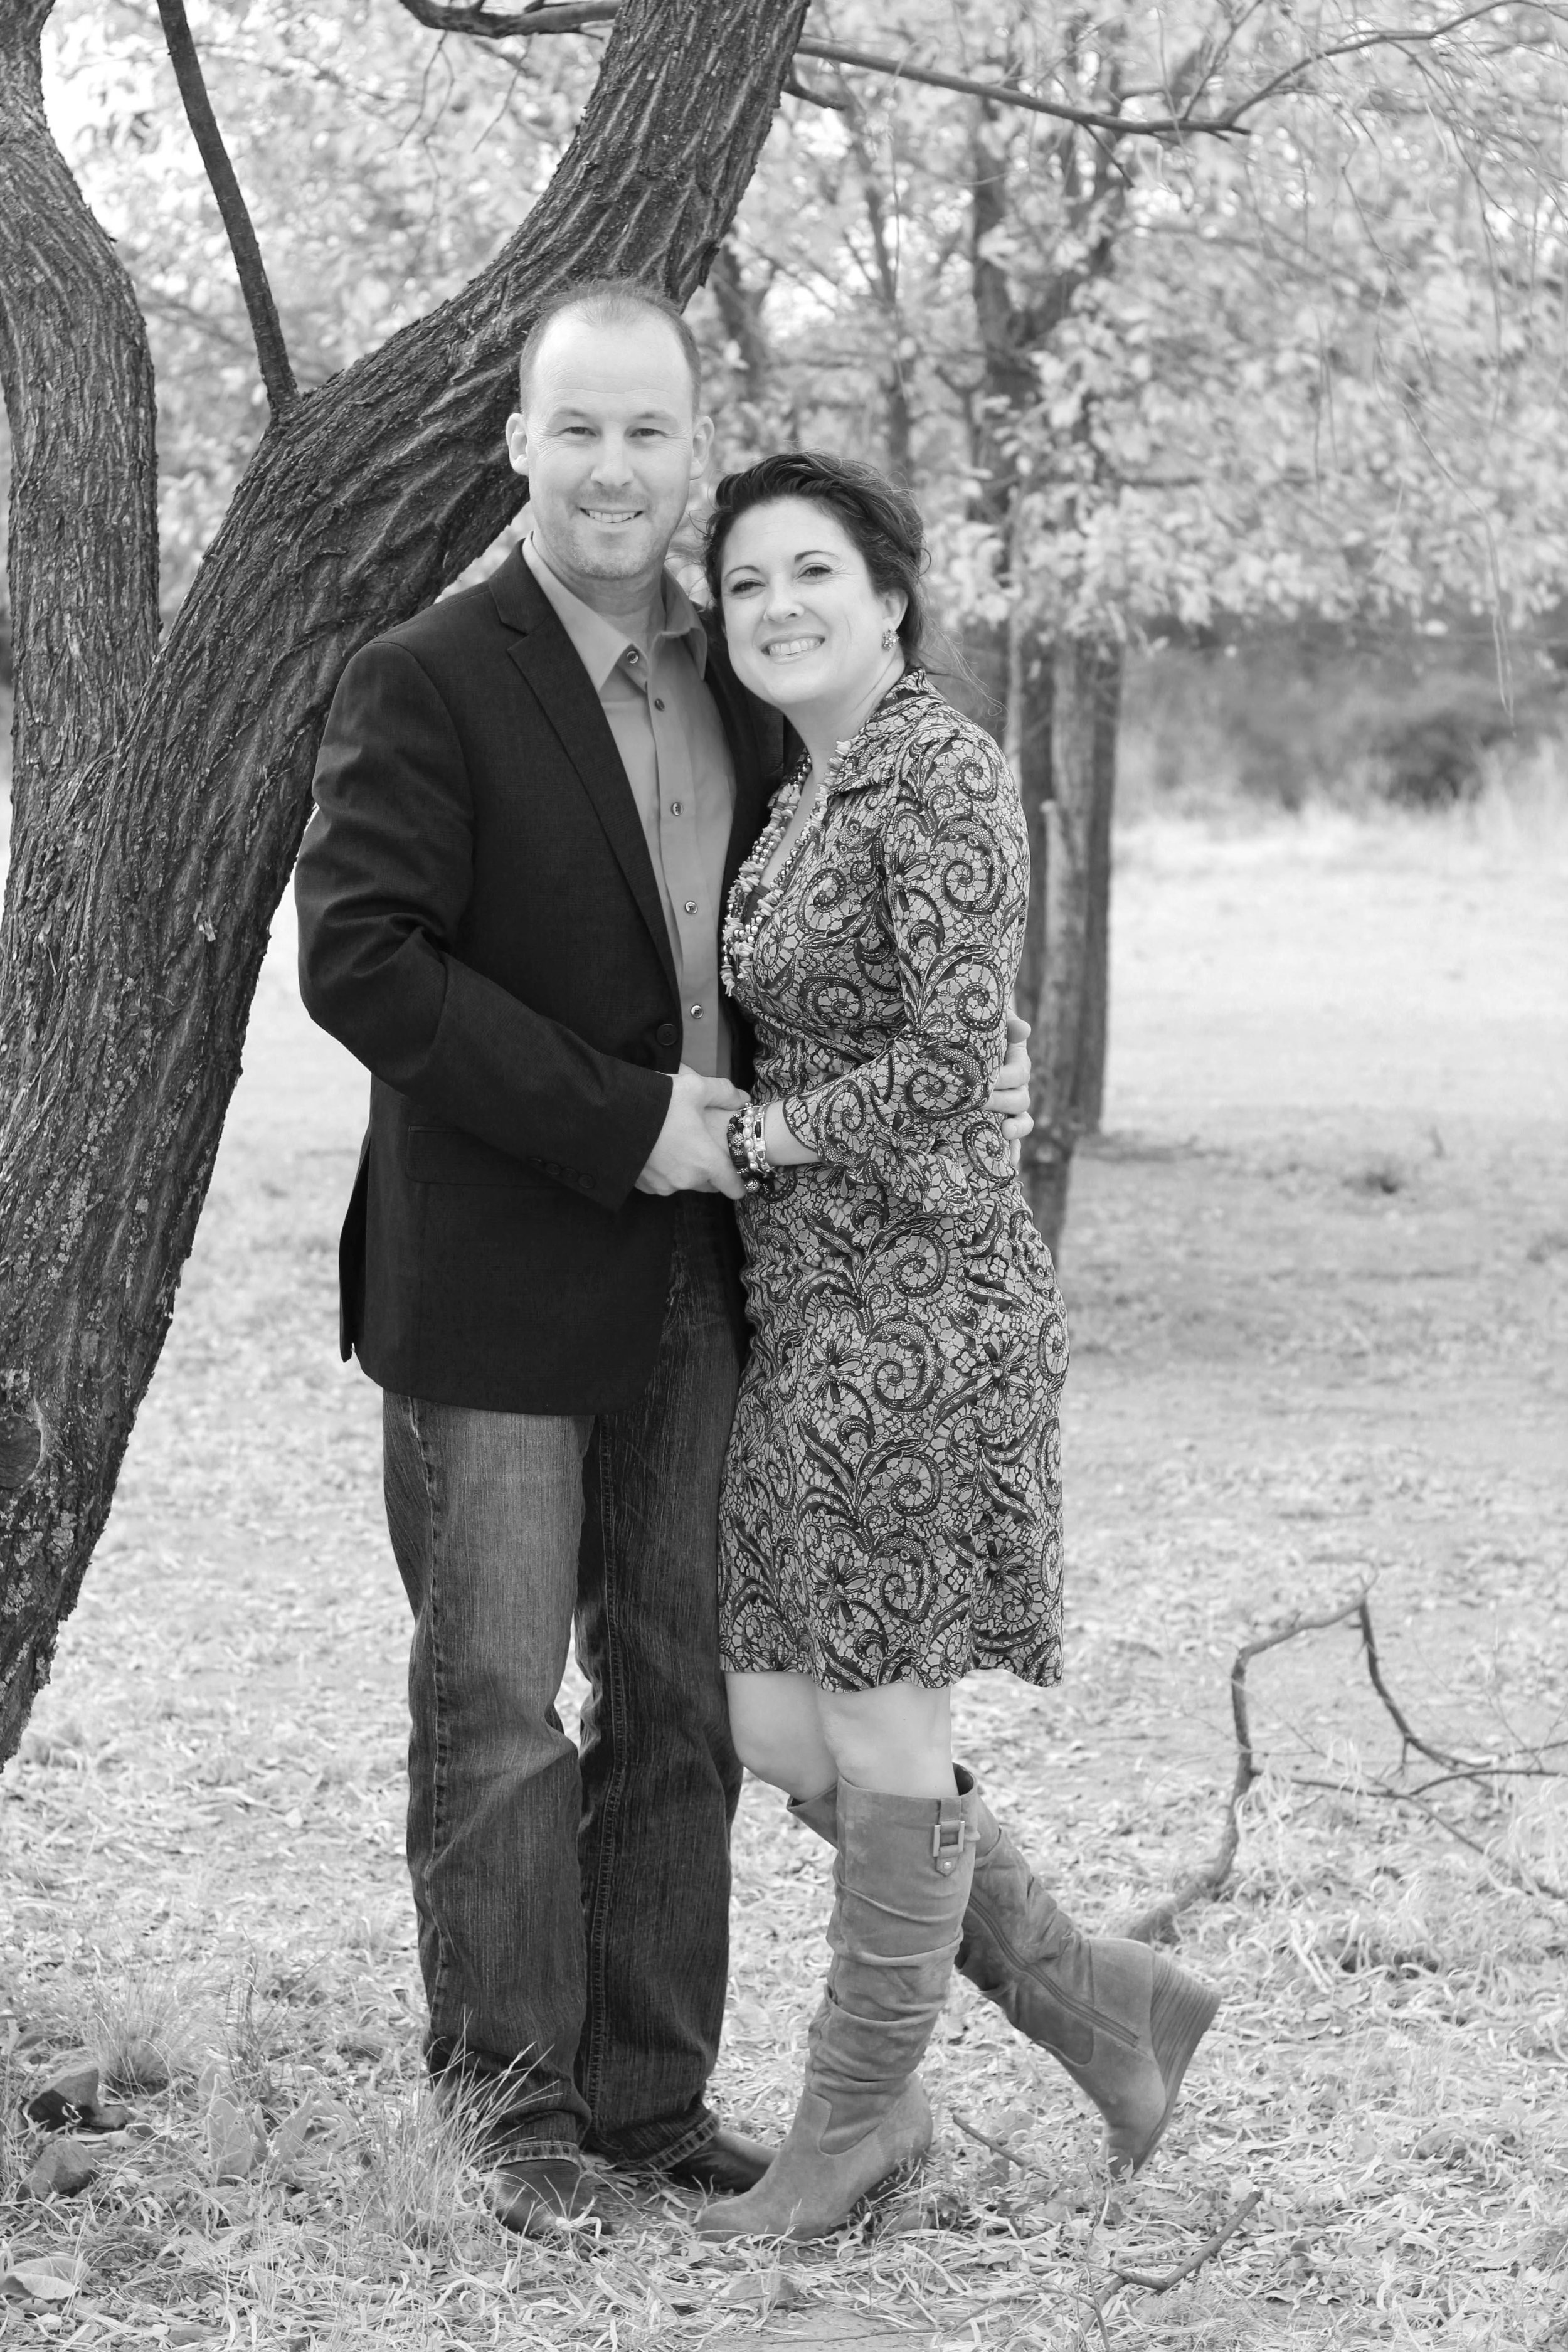 Pastors Randyand Candy Killman - Prescott CampusFrom Randy: I am a passionate leader who has been called to lead and serve not only as a lifestyle but also in marketplace ministry; as a pastor I have been called into full time ministry and I am also a professional Firefighter/Paramedic. My passion is caring for many in and out of trauma and I believe God equipped me years prior for both platforms of ministry. One of my life verses sums up my passion and caring; Matt 20:26-28 (paraphrased): I (Randy) am a man of servitude, slavery to the call and a man of giving for ransom of many. I have been positioned for the bigger, greater good of the unity and call in Christ. For that end I will serve. I am honored to be a part of ministry with the Rancho Milagro Foundation; along with the leadership of this amazing foundation and my family, we answer the call to help heal the afflicted of abuse due to PTSD. I am also honored to be the Chaplain of my Local 3690, the Sedona Verde Valley Firefighters. I am humbly honored to be the man God has created me to be and blessed to be chosen to lead as a Pastor within my denomination, home, community and the Kingdom of God. My 'yes' to God will never exhaust.Candy is a wife, mother, and daughter of the King who longs to live in the greatest revival the world has ever seen. She is passionate to see the body of Christ celebrating each other's God given purposes and helping them walk it out! Candy's greatest joy is seeing with God's eyes the gifts, anointing and call He has given to His children. She strongly desires to walk in the fullness of the Spirit (Matthew 10:8) and be the tangible love of God to others. Serving as the Multi-Site Leader of Operations for the past 5 years and now being assigned by God to join her husband as Co-Pastor of the Prescott Campus, her first call is being a daughter of the King, wife to her husband, and mother to her children as the understanding of revival starting in the home is great. 'Love them like Jesus